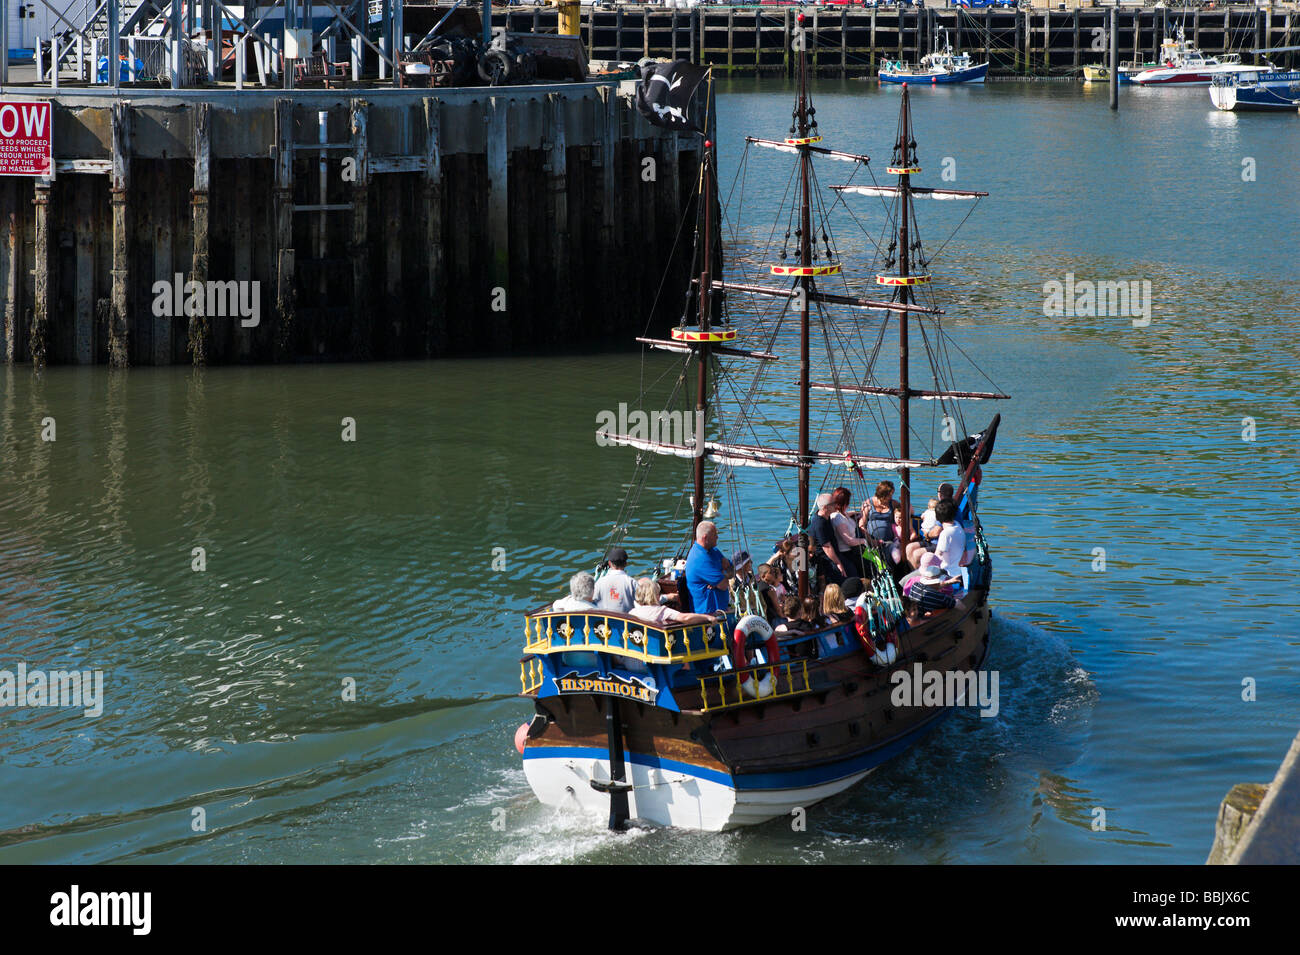 Excursion boat returning to the harbour, Scarborough, East Coast, North Yorkshire, England - Stock Image